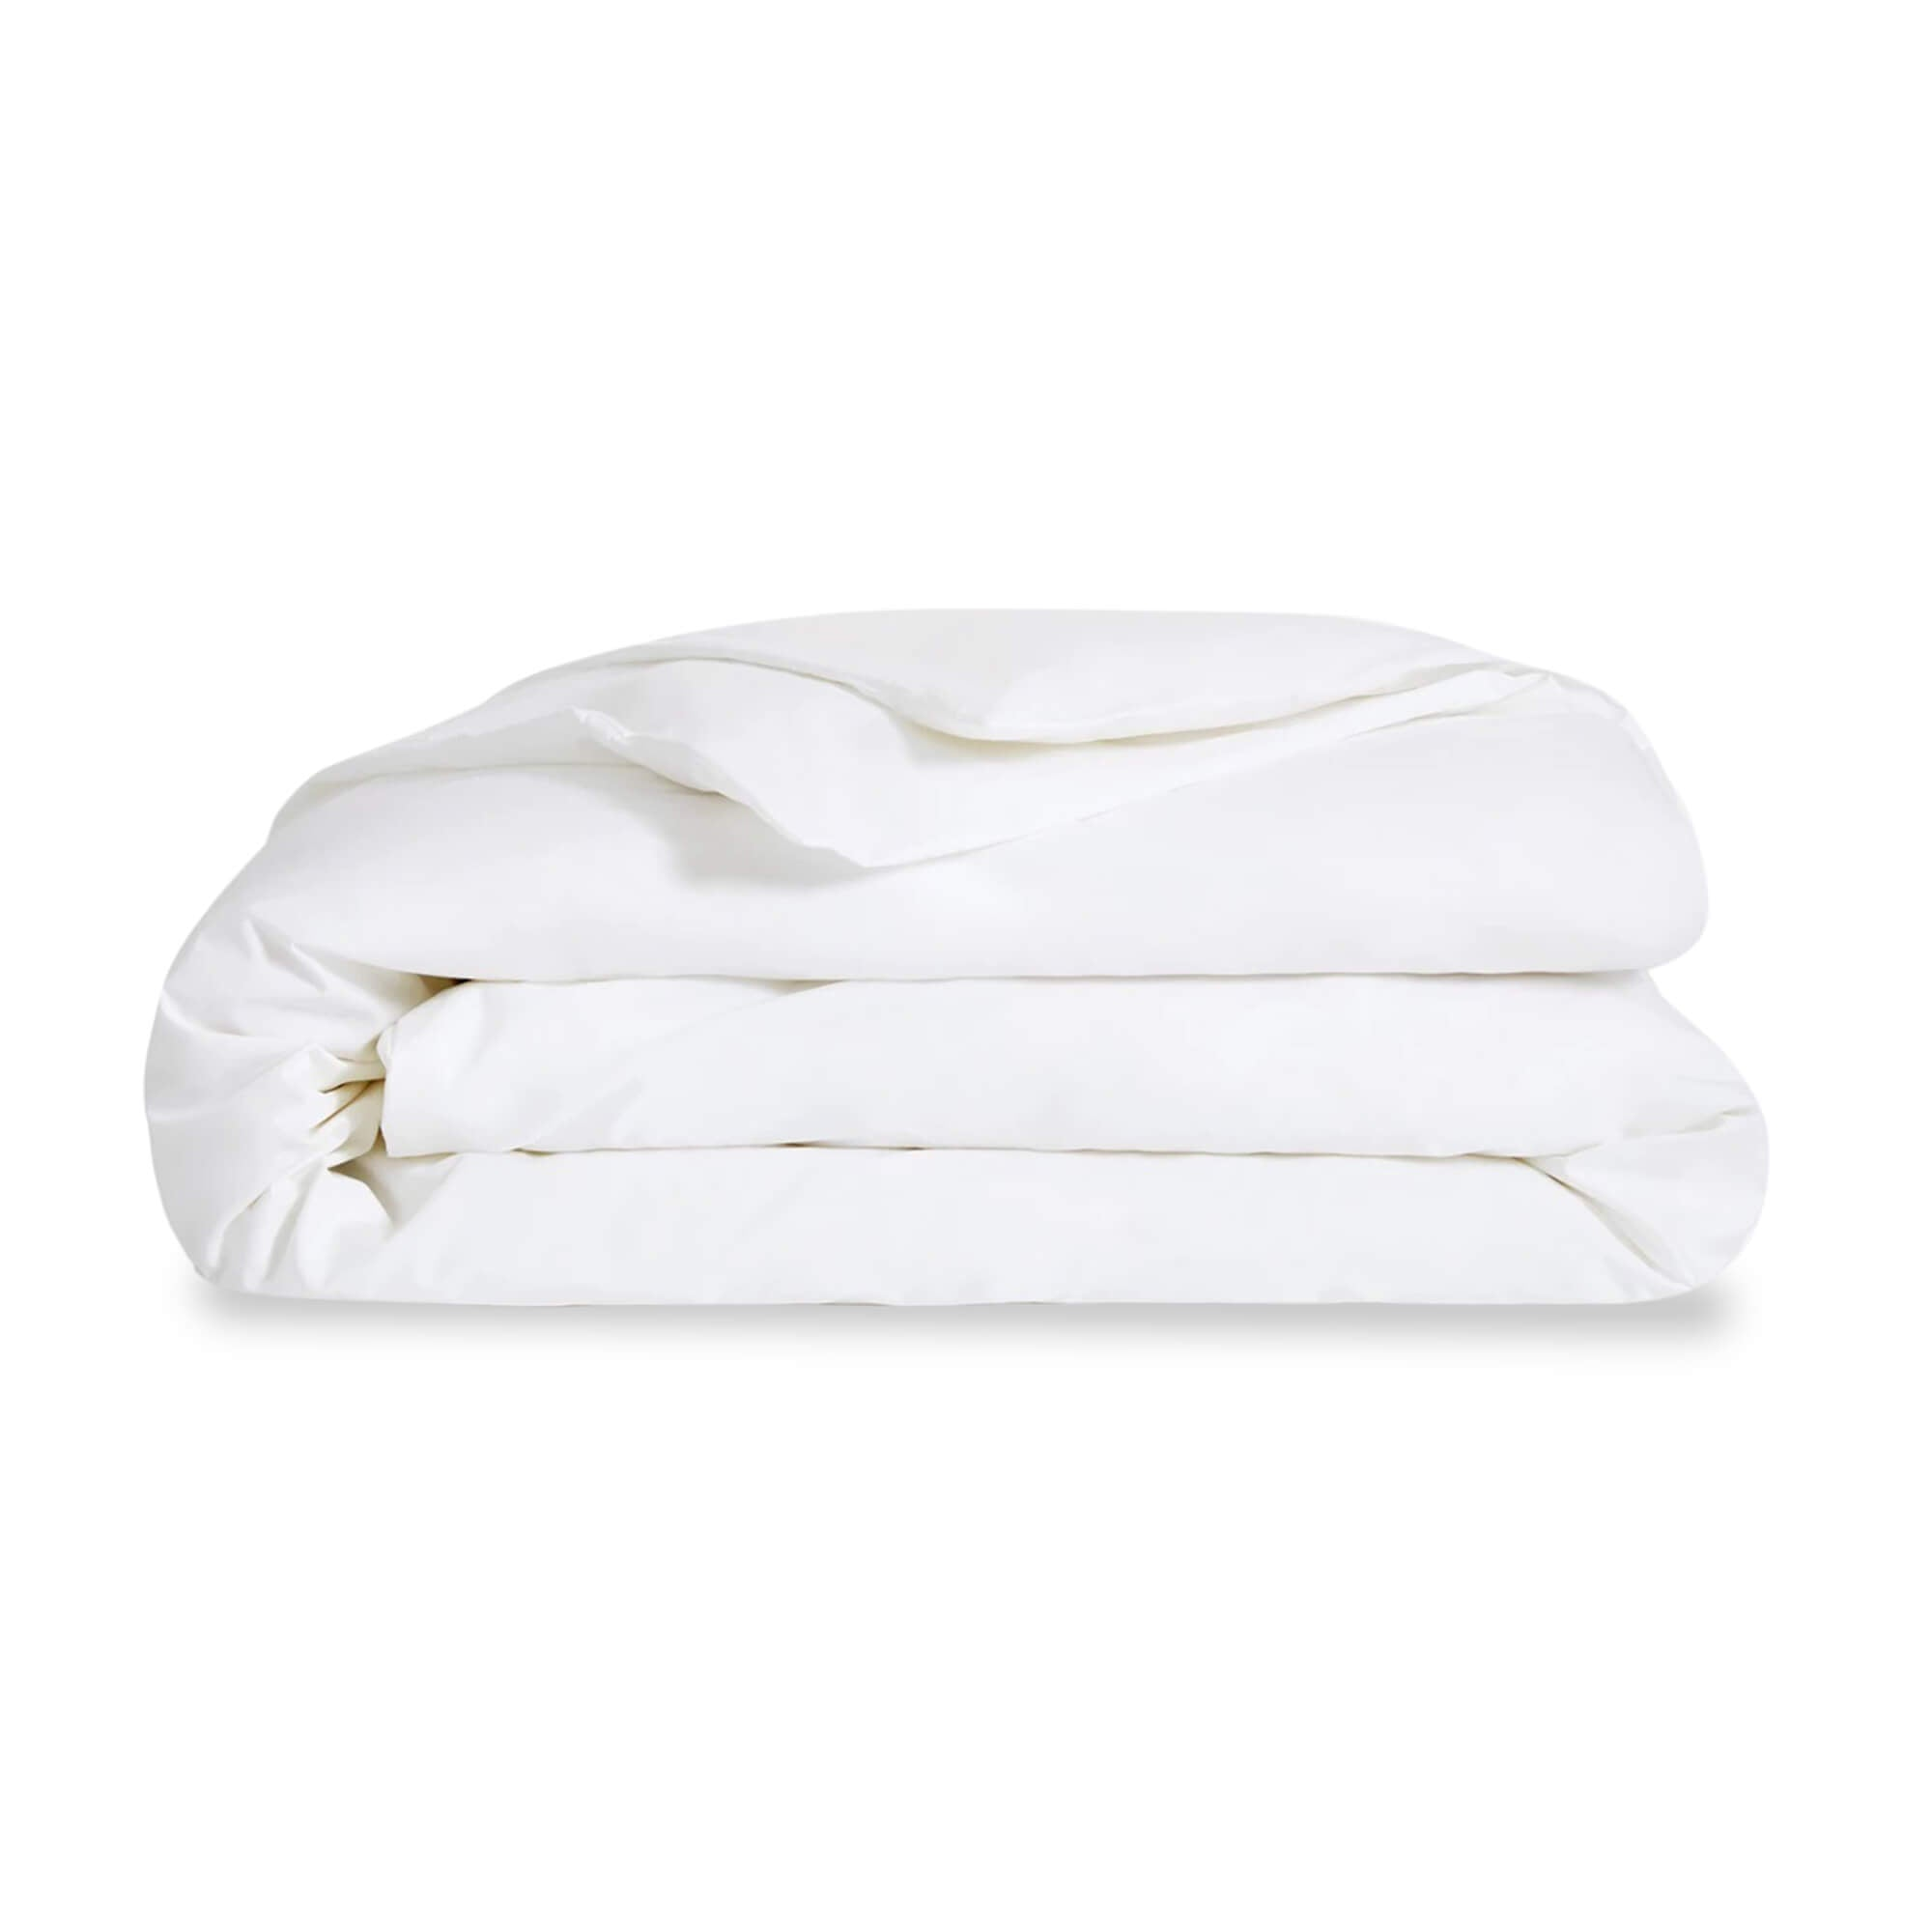 Delilah Home 100% Organic Cotton Duvet Covers